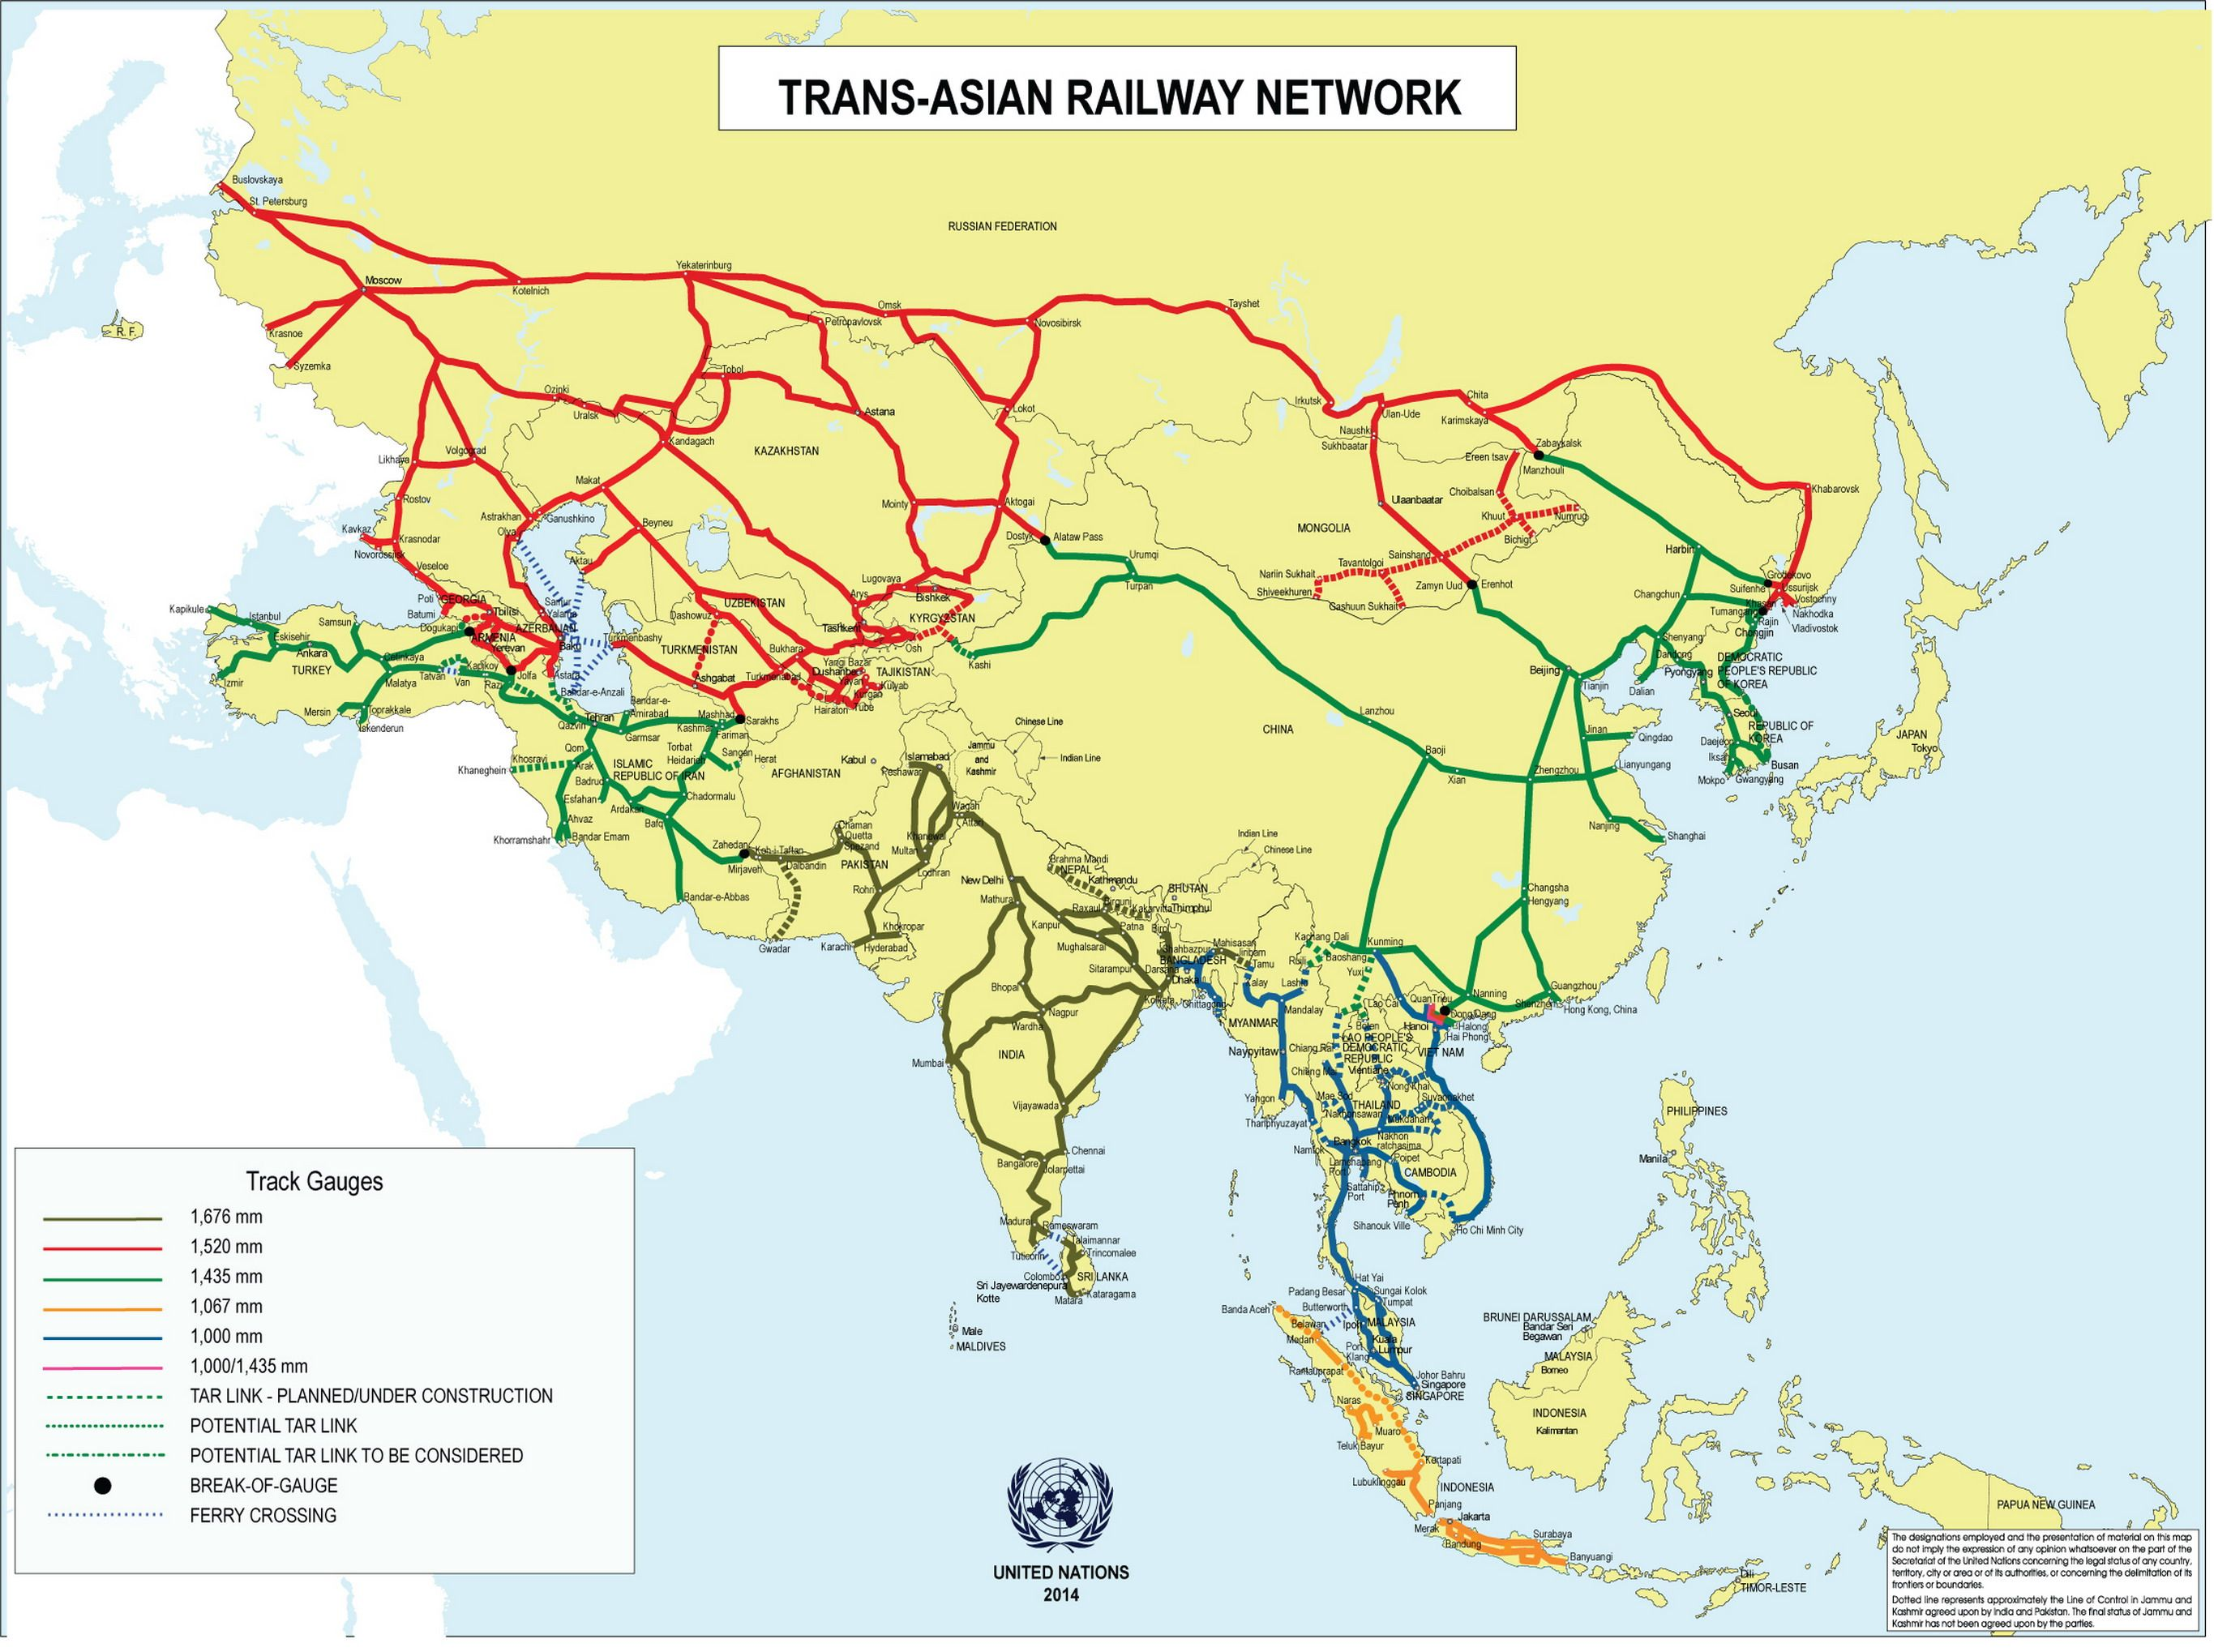 Map 9f Asia.Trans Asian Railway Network Map Maps Map Silk Road Rail Transport